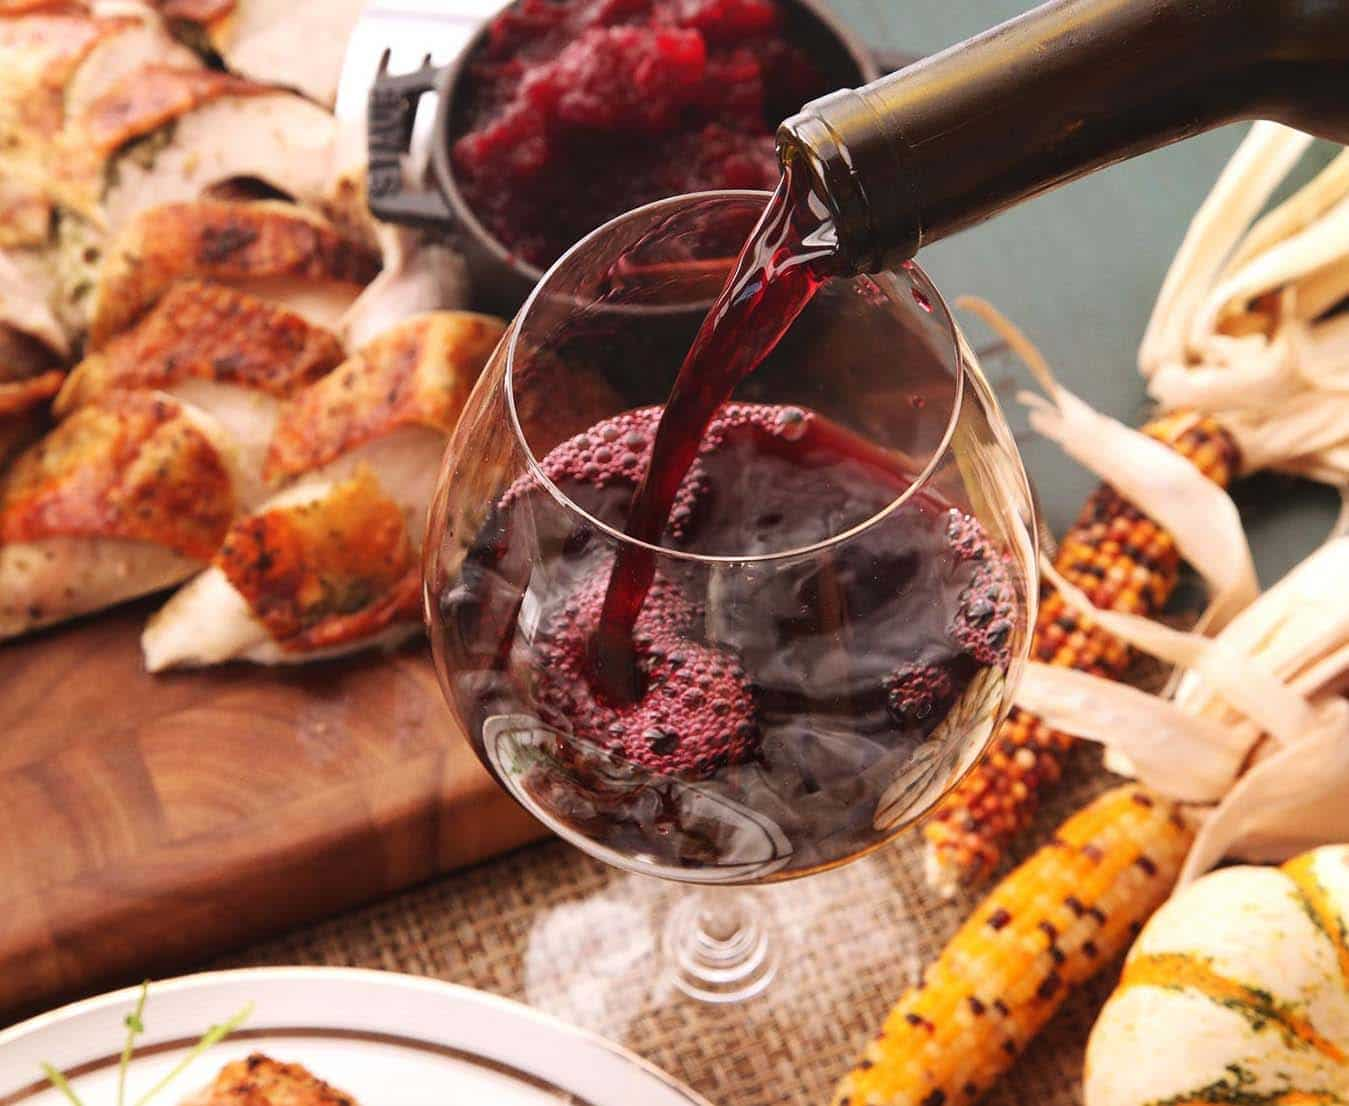 Wine tourism on the rise in the Western Cape